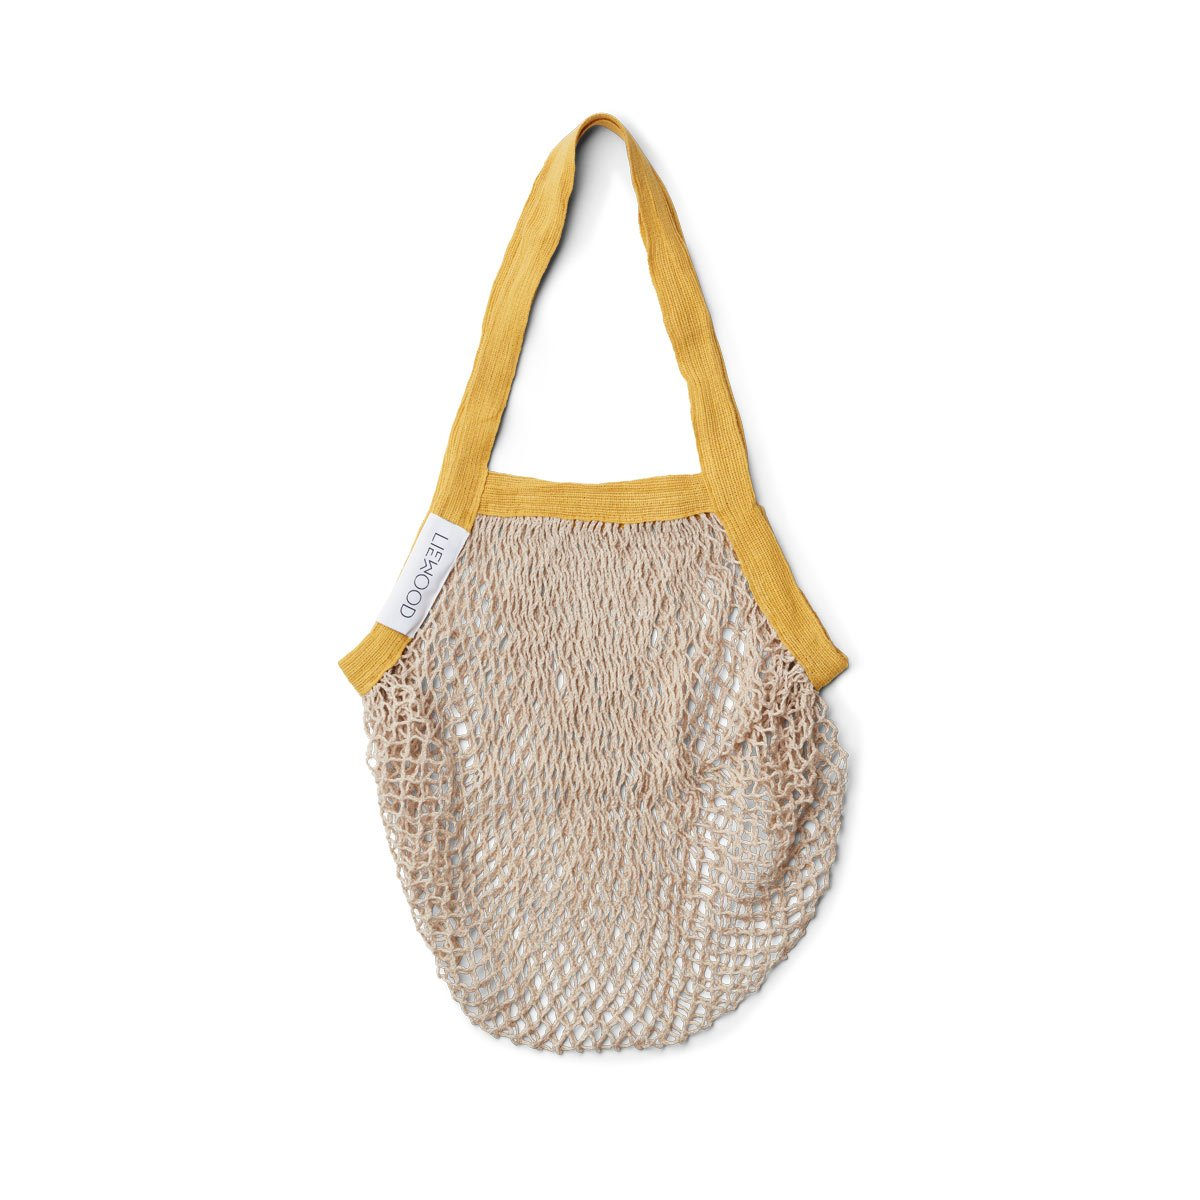 Mesi Mesh Tote Bag - Sandy